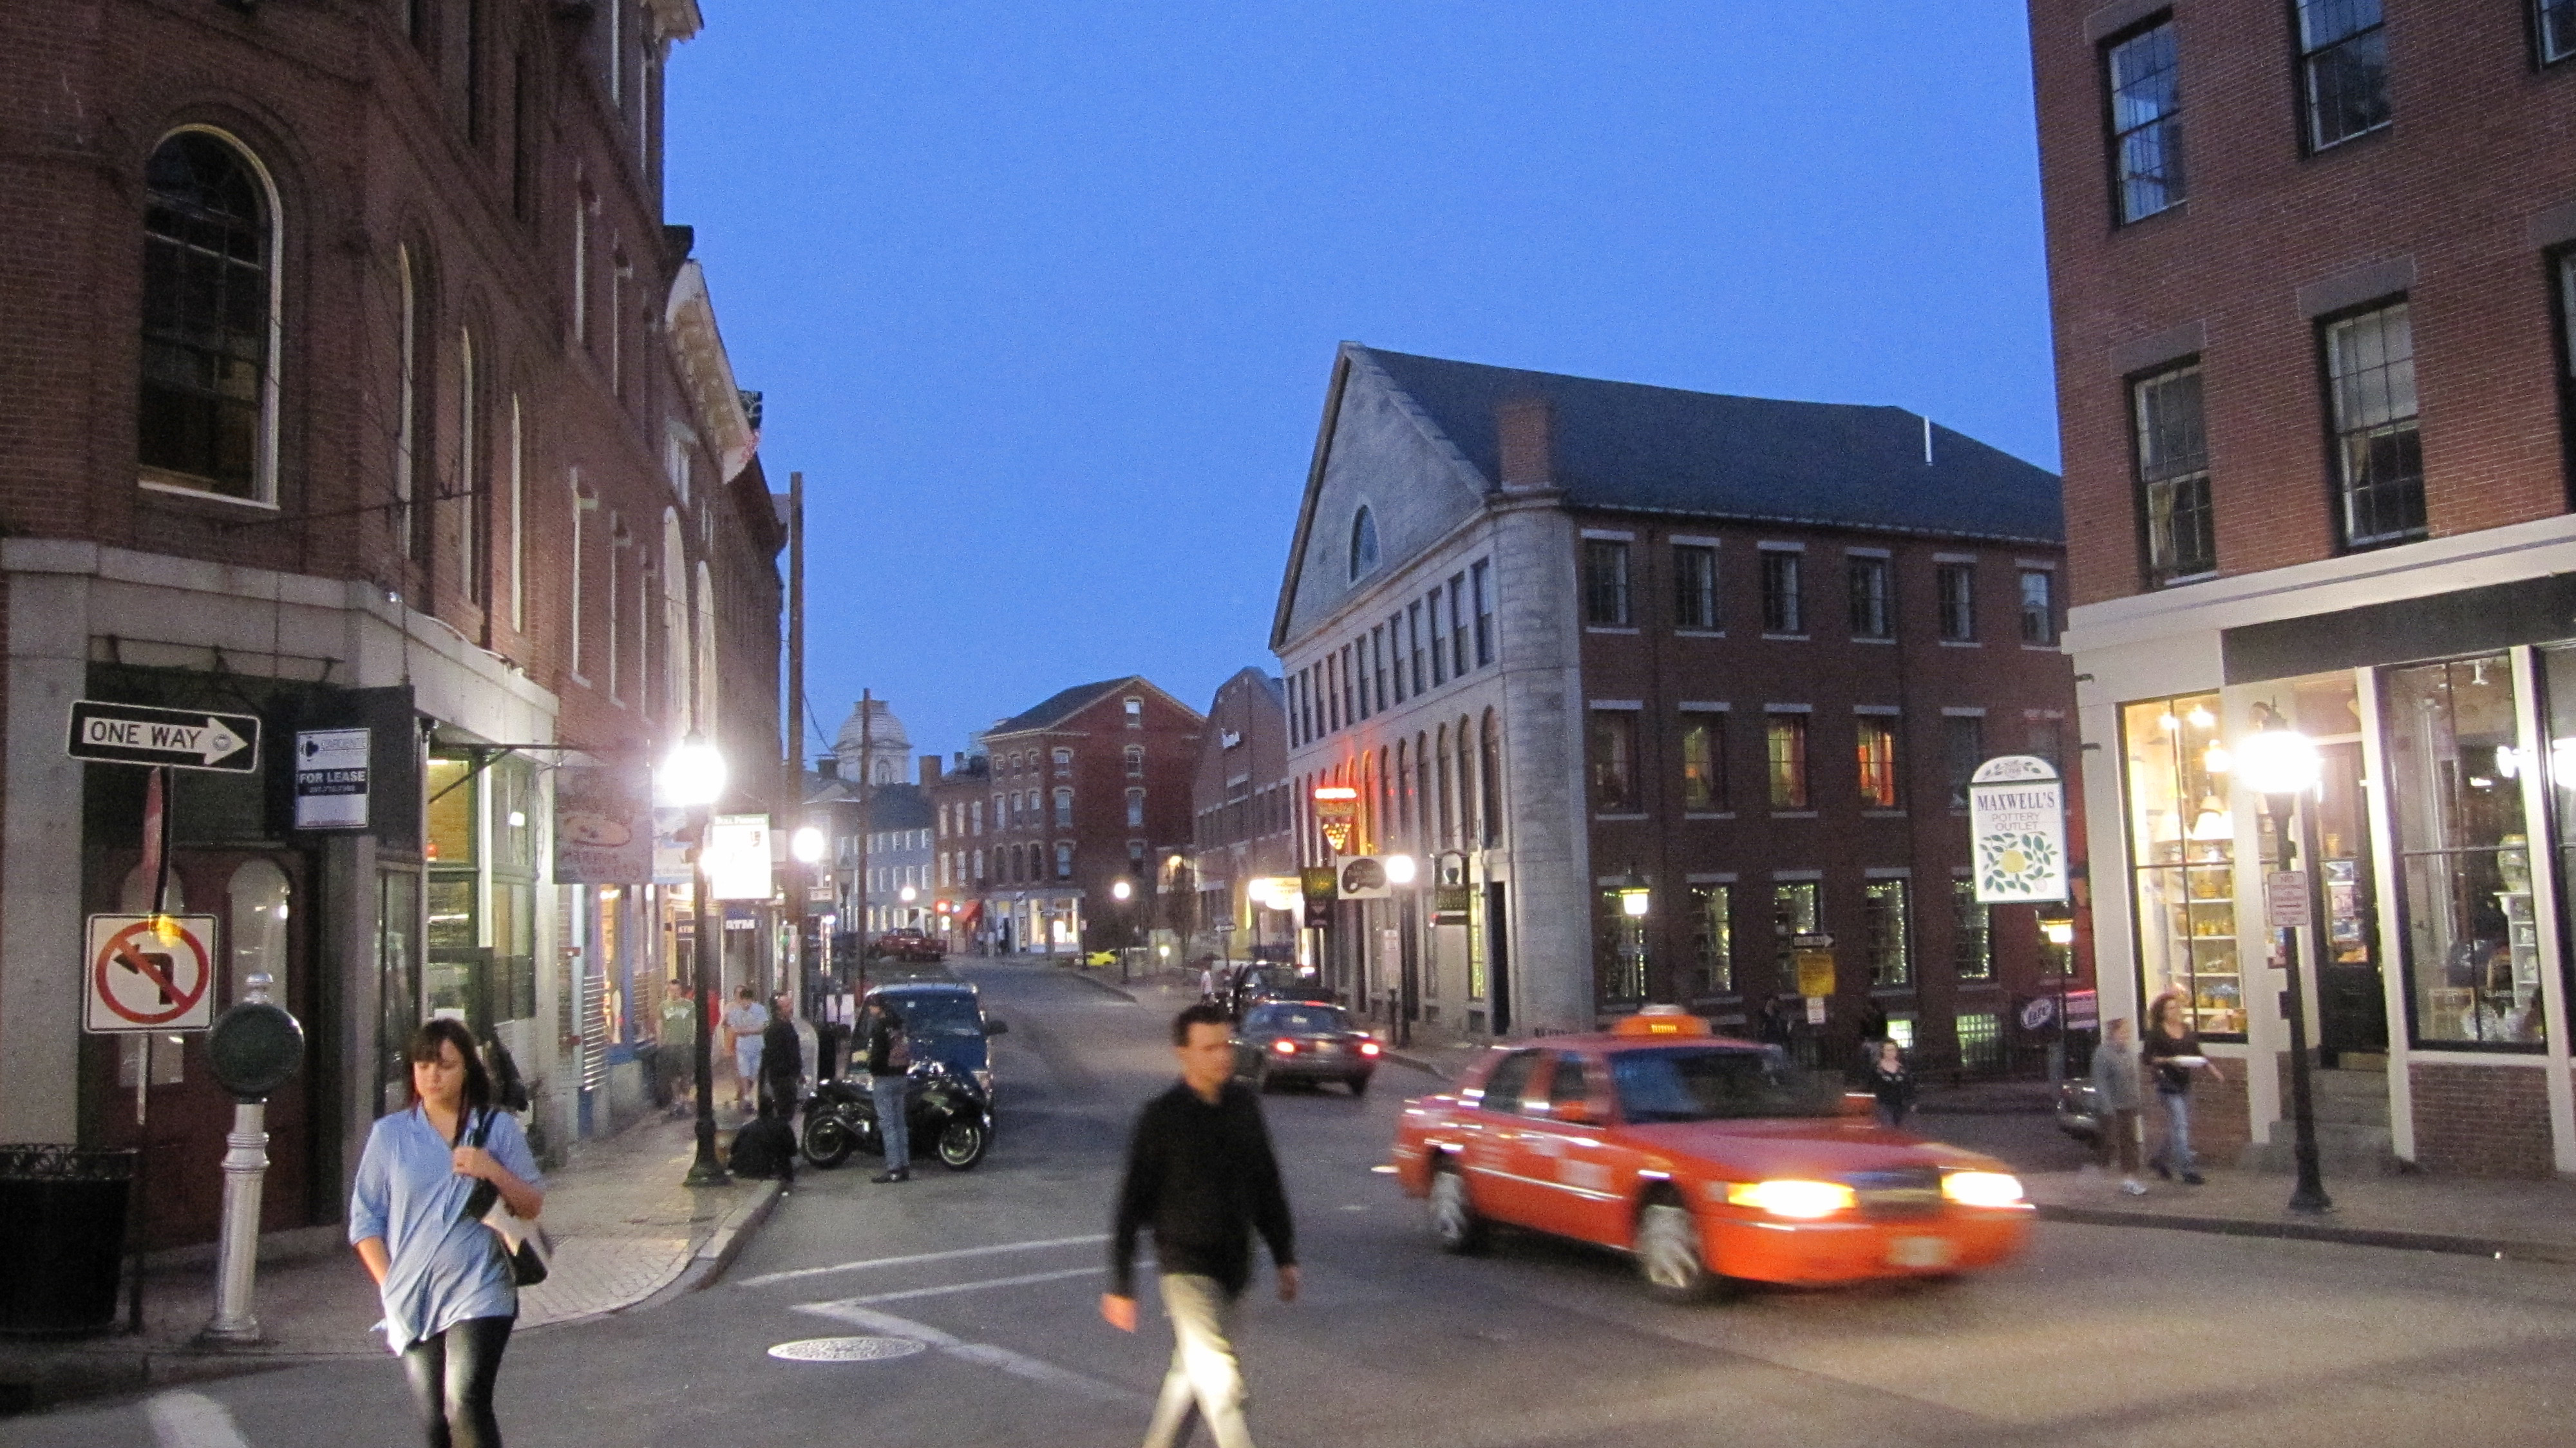 Bricks are heavily featured in the buildings of downtown in Portland, Maine. (Josh Noel/Chicago Tribune/MCT)